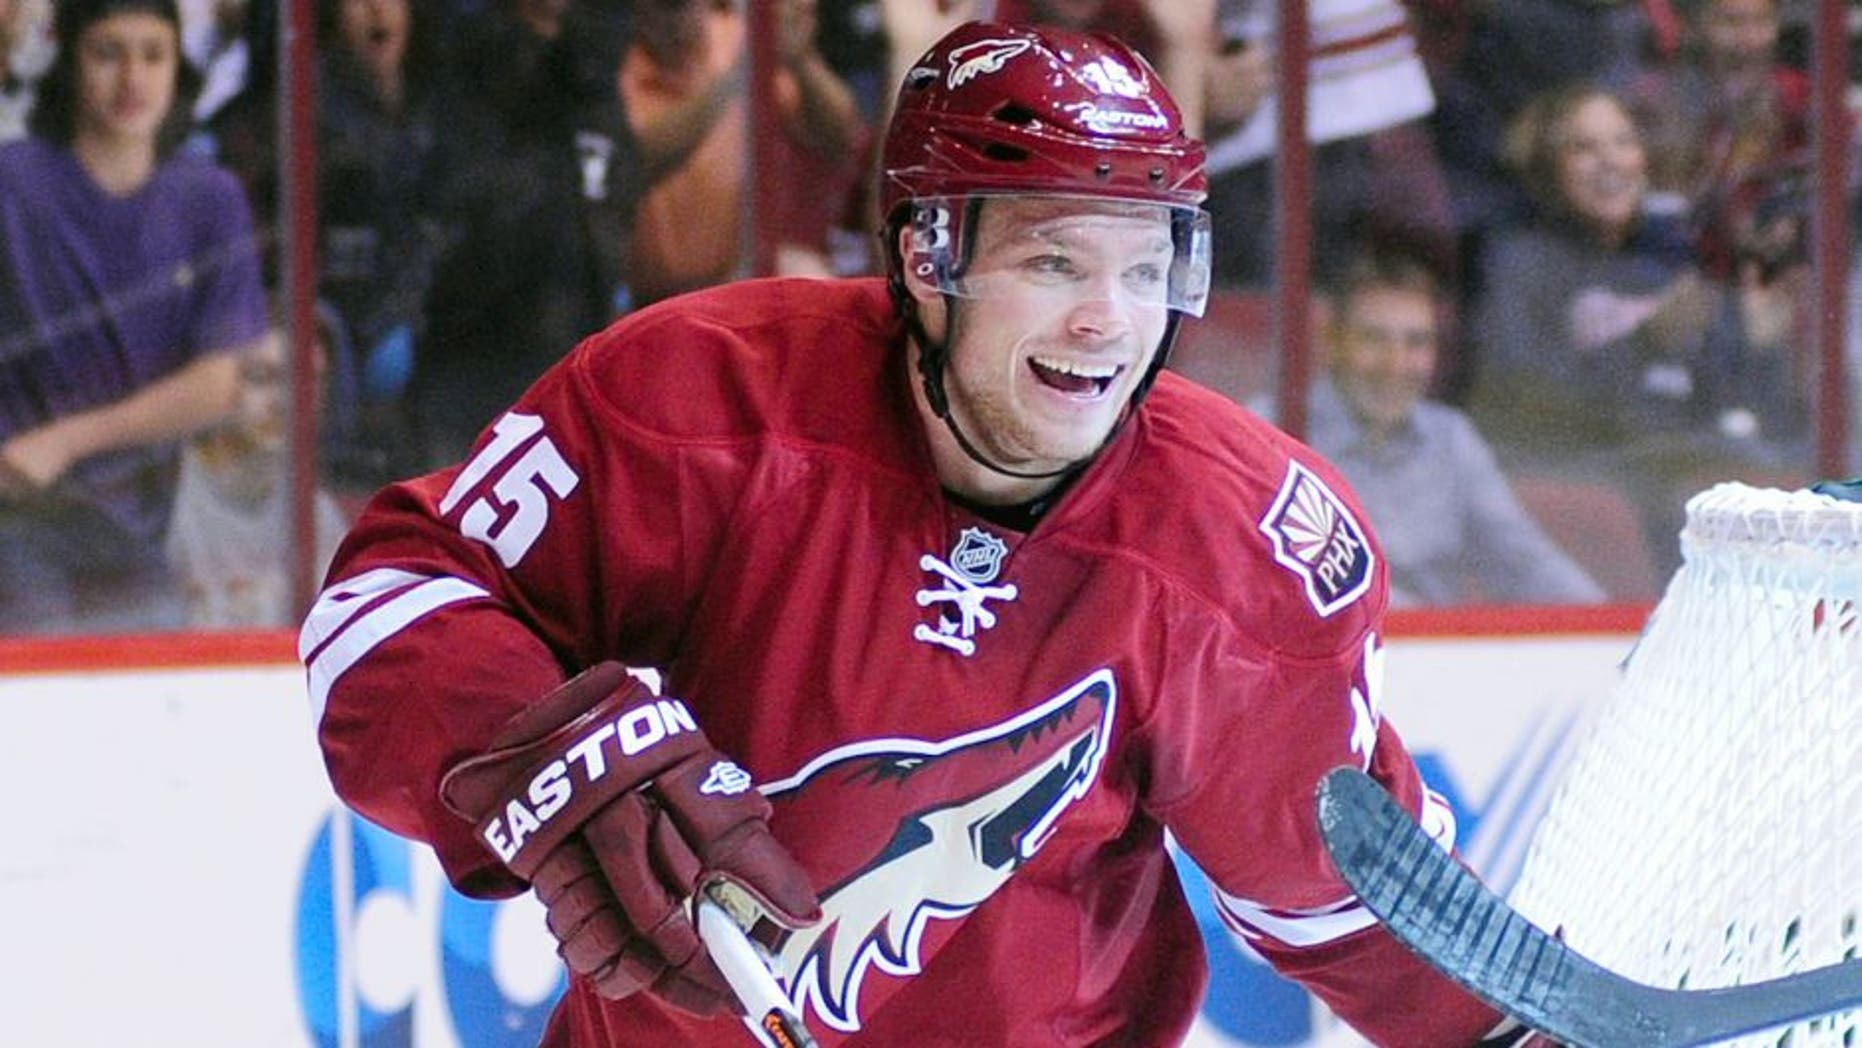 Sep 27, 2013; Glendale, AZ, USA; Phoenix Coyotes center Max Domi (15) celebrates after a goal by right wing Radim Vrbata (17) during the second period against the San Jose Sharks at Jobing.com Arena. Mandatory Credit: Matt Kartozian-USA TODAY Sports